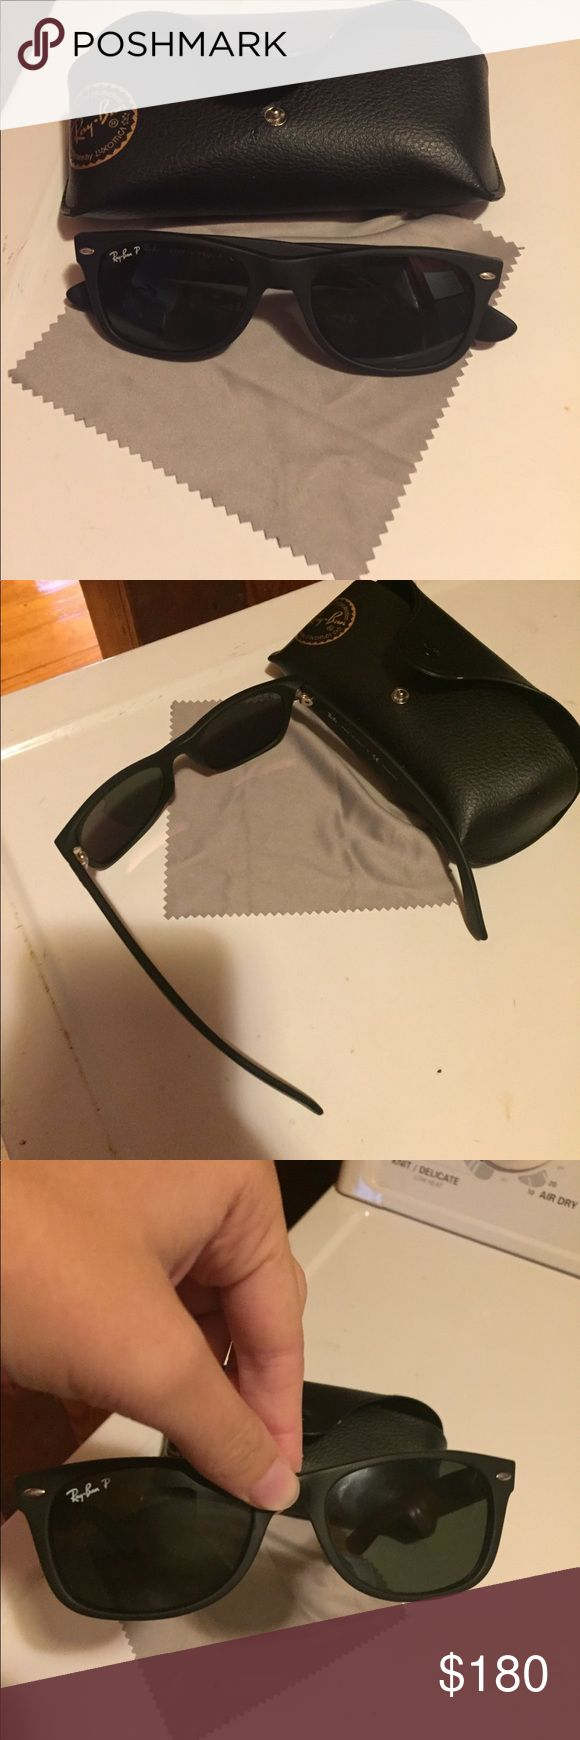 polarized org ray ban wayfarer i bought for 210$ at the sunglass hut. they have only been worn once and kept in case. asking 200 obo. make offer. Ray-Ban Accessories Sunglasses